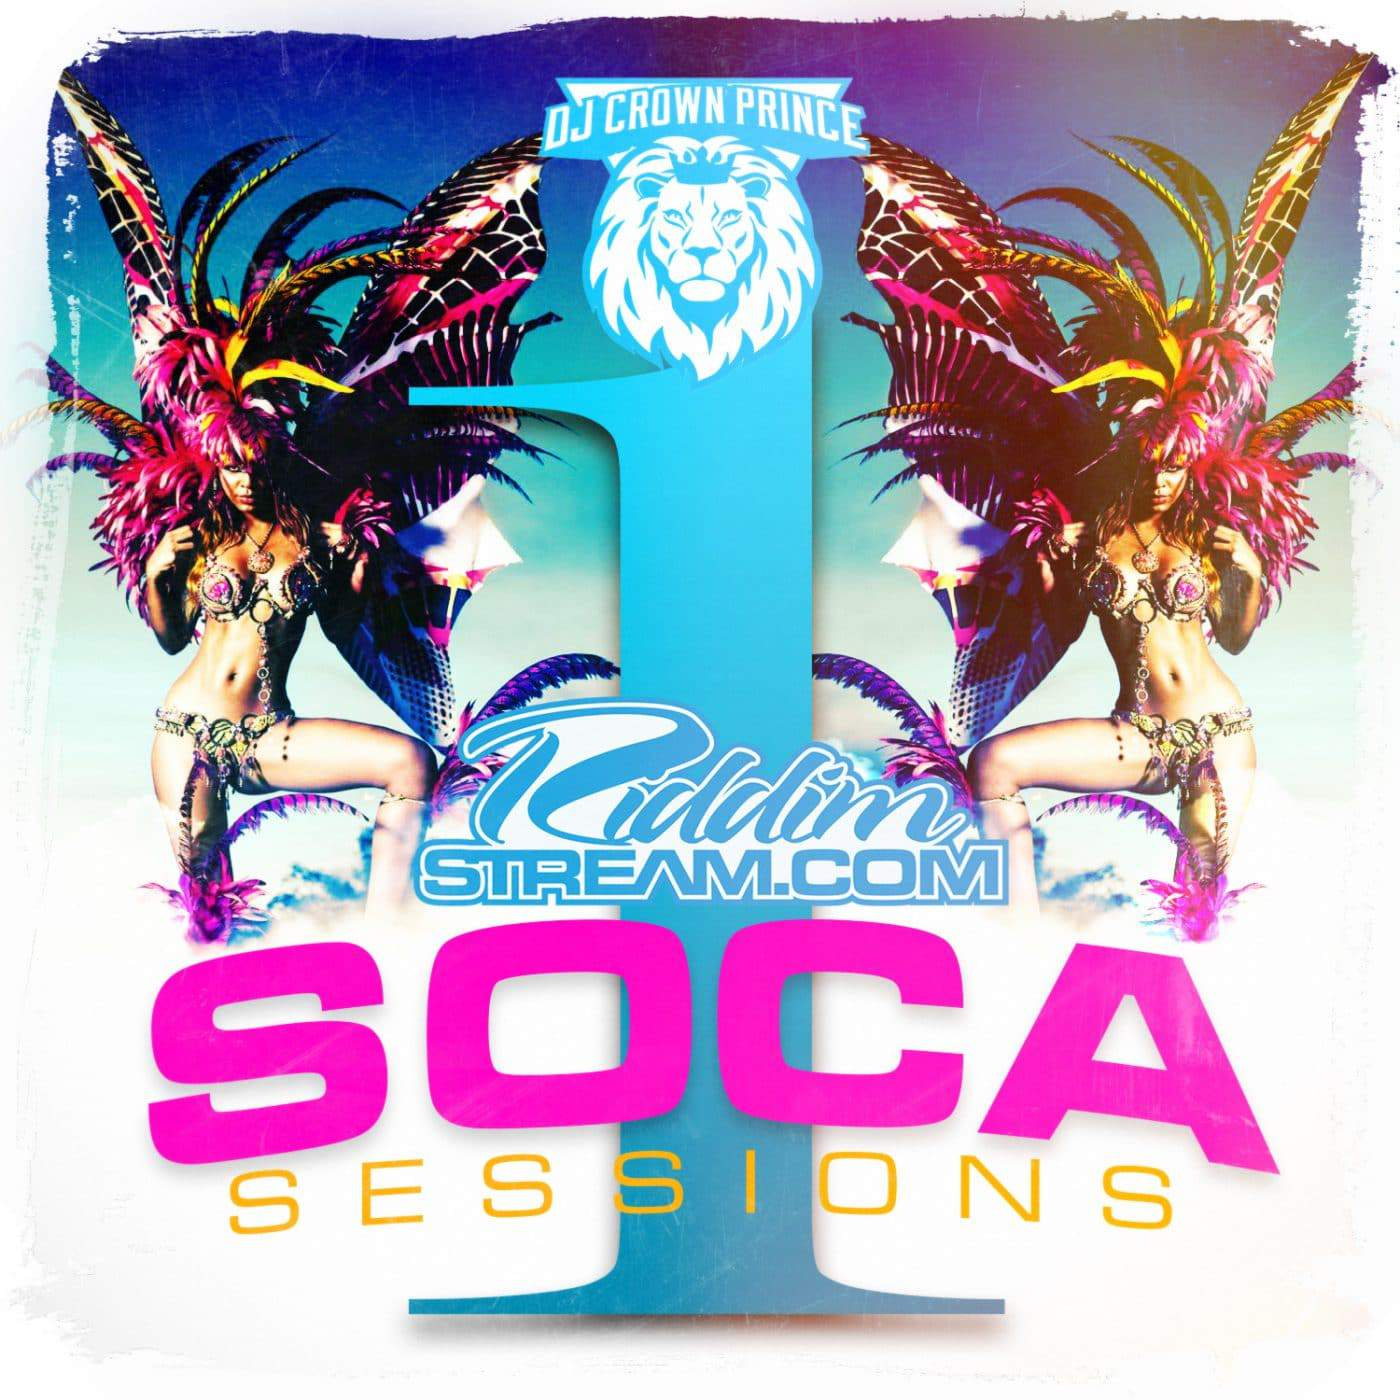 Dj Crown Prince - Riddimstream Soca Sessions Vol 1